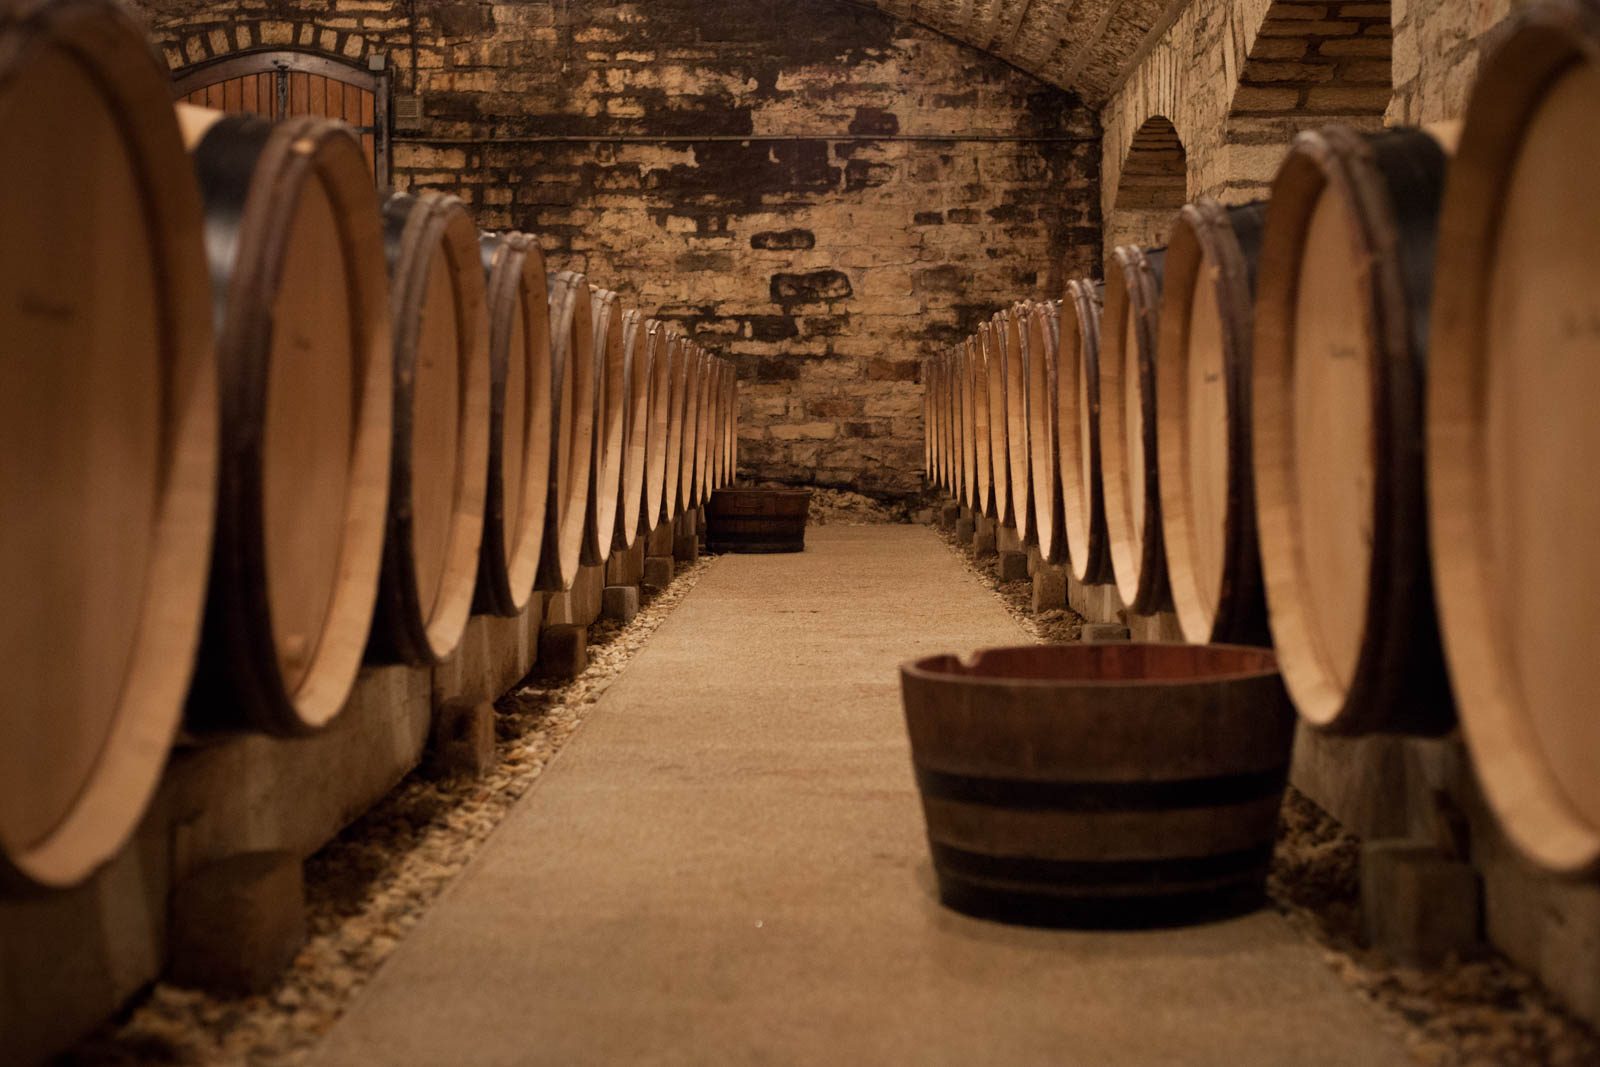 Unfathomable riches lie within these barrels: the 2016 vintage of Echézeaux, Grands Echézeaux and Corton. In typical vintages, the barrels would be stacked in twos, but not with 2016. Frost and hail kept yields very small. ©Kevin Day / Opening a Bottle